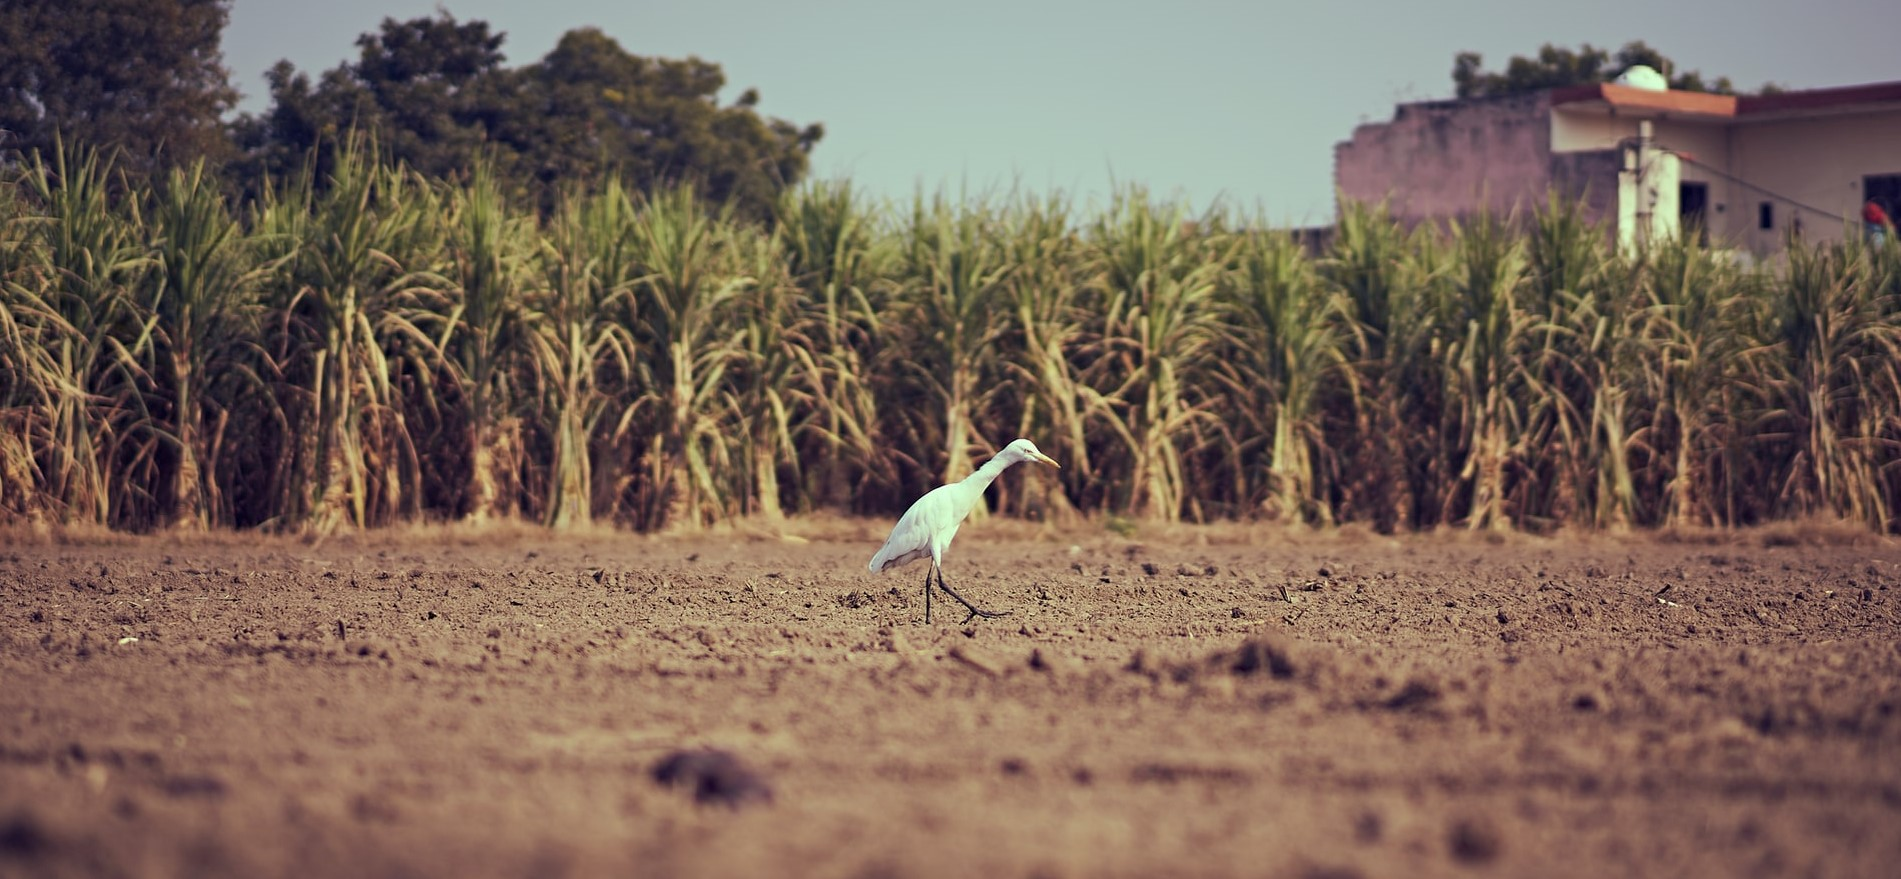 Harvesting of Sugarcane & Management of their residue